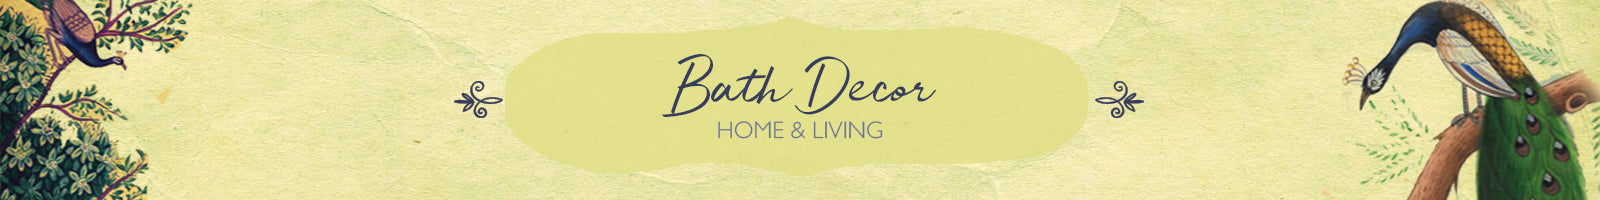 Authentic Handcrafted Bath Decor Products by The India Craft House